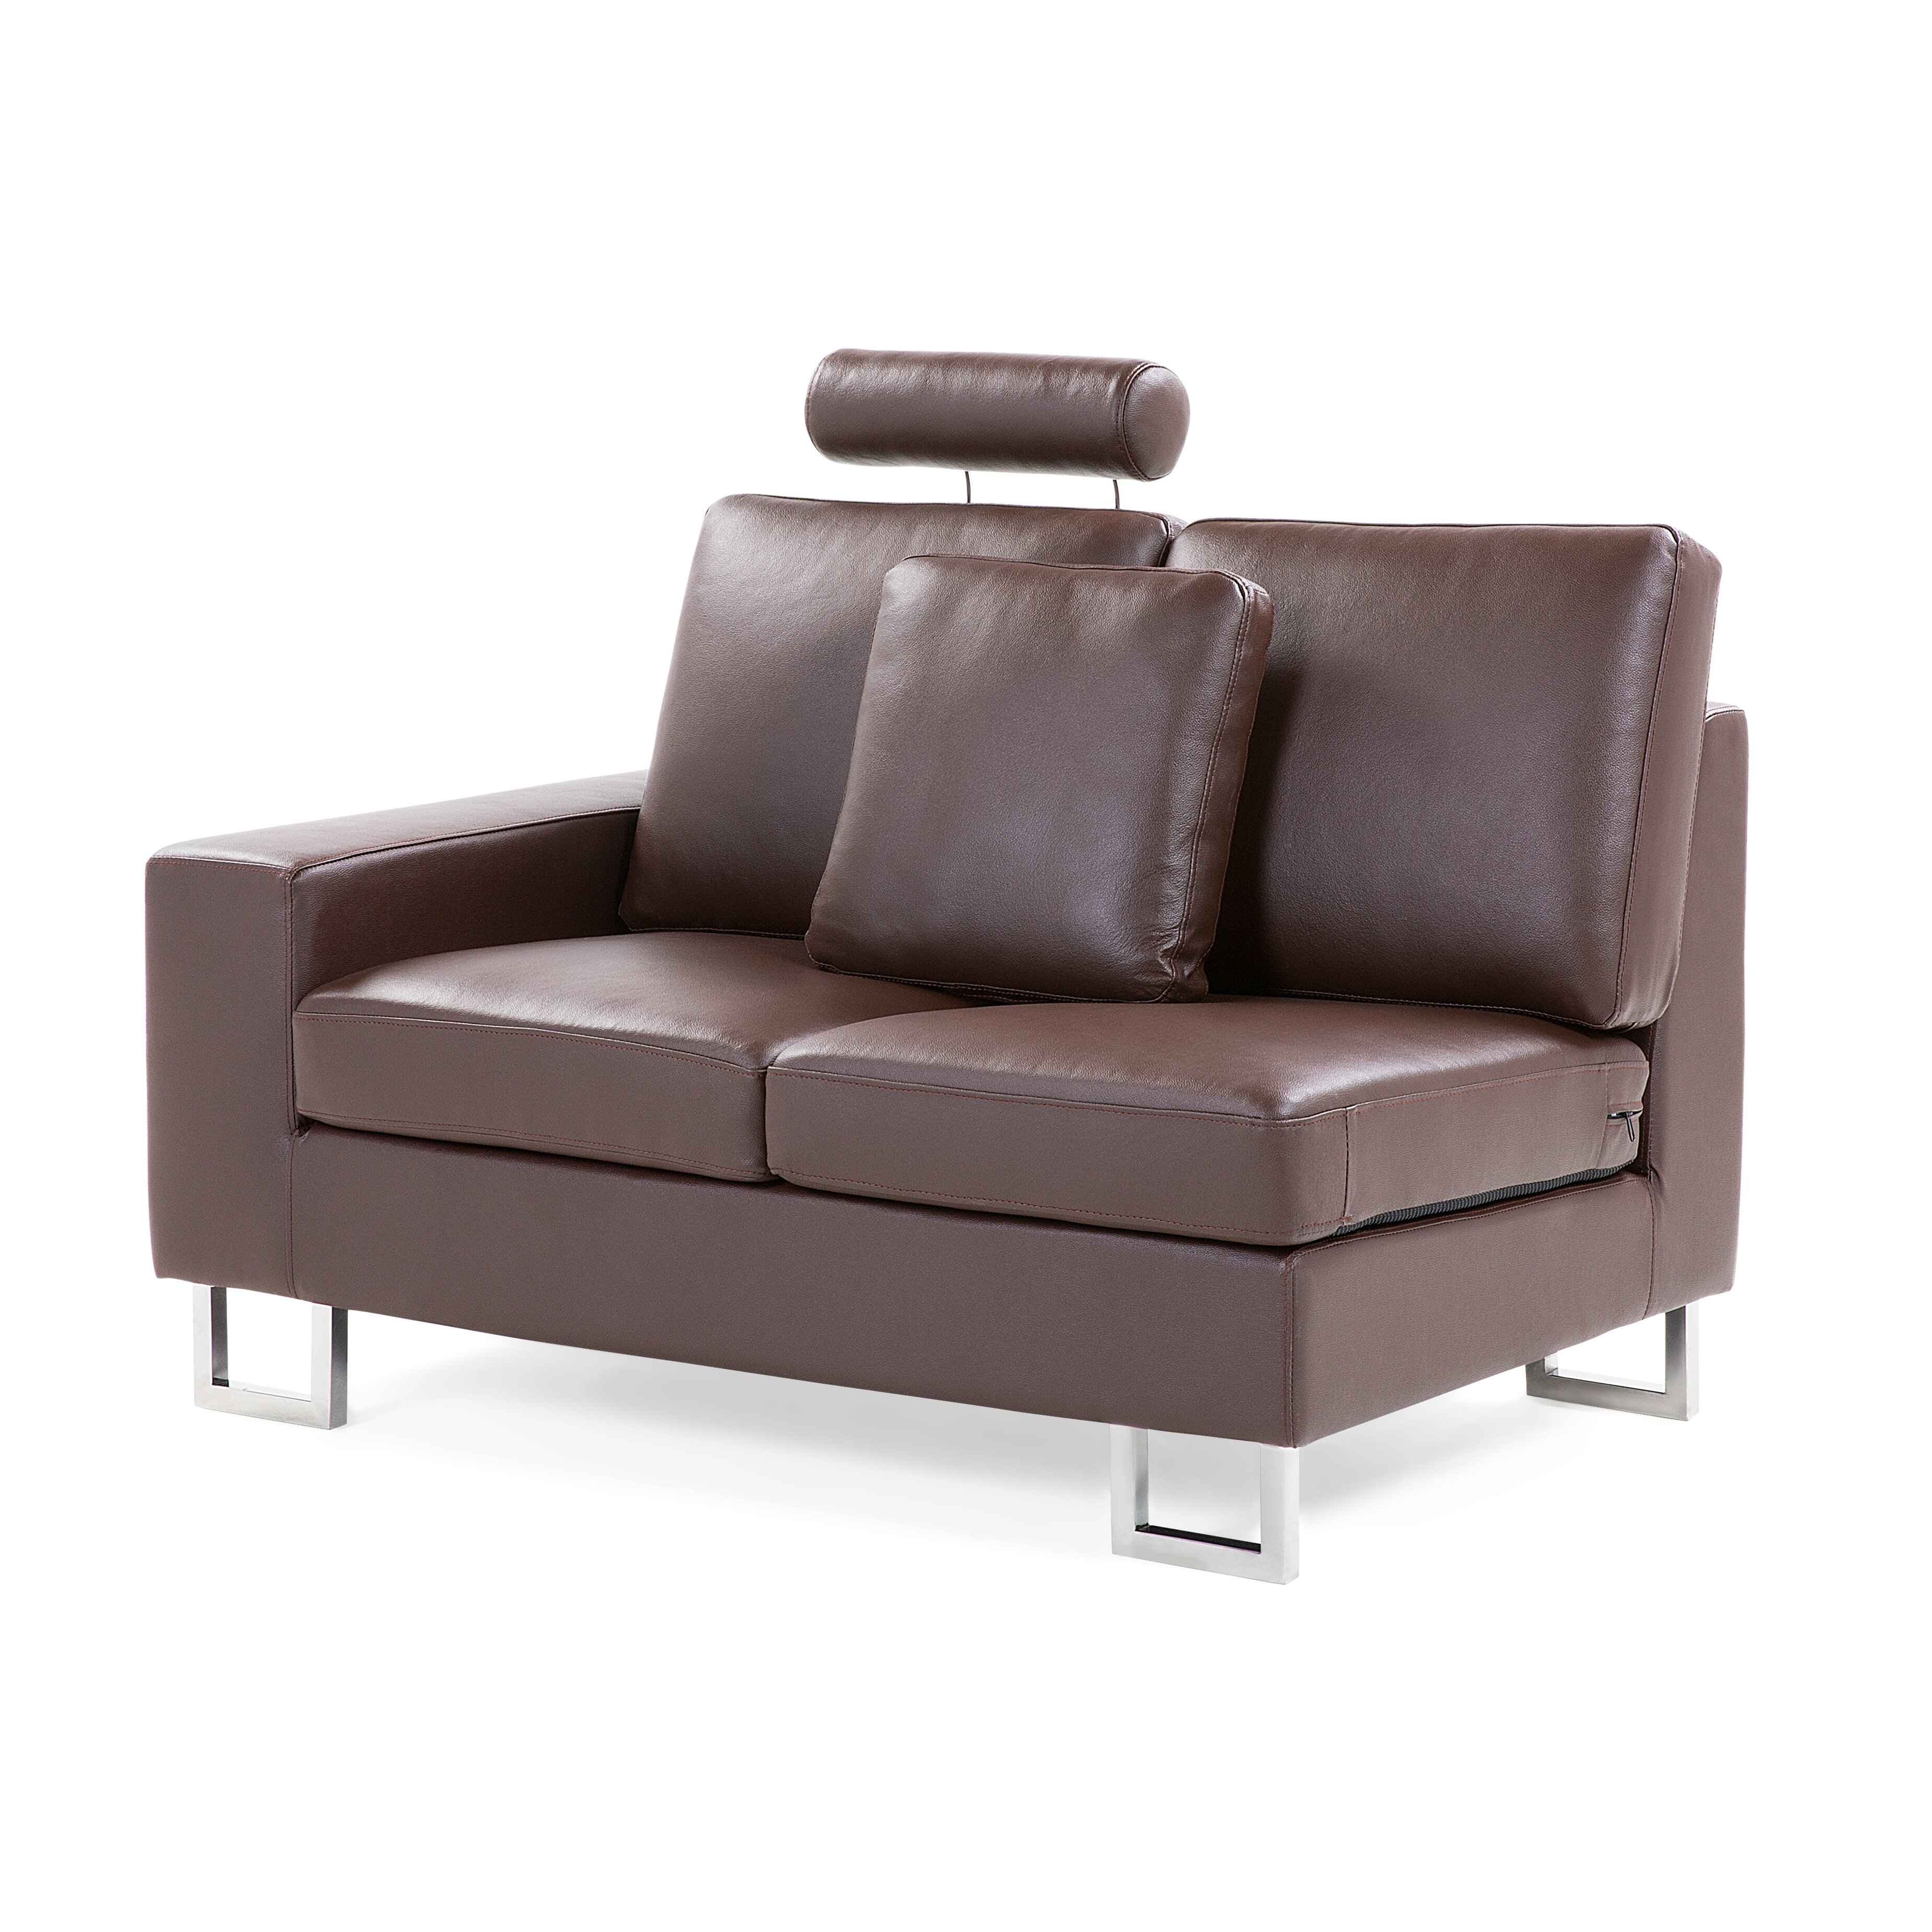 Beliani Stockholm Leather Sectional Reviews Wayfair Supply